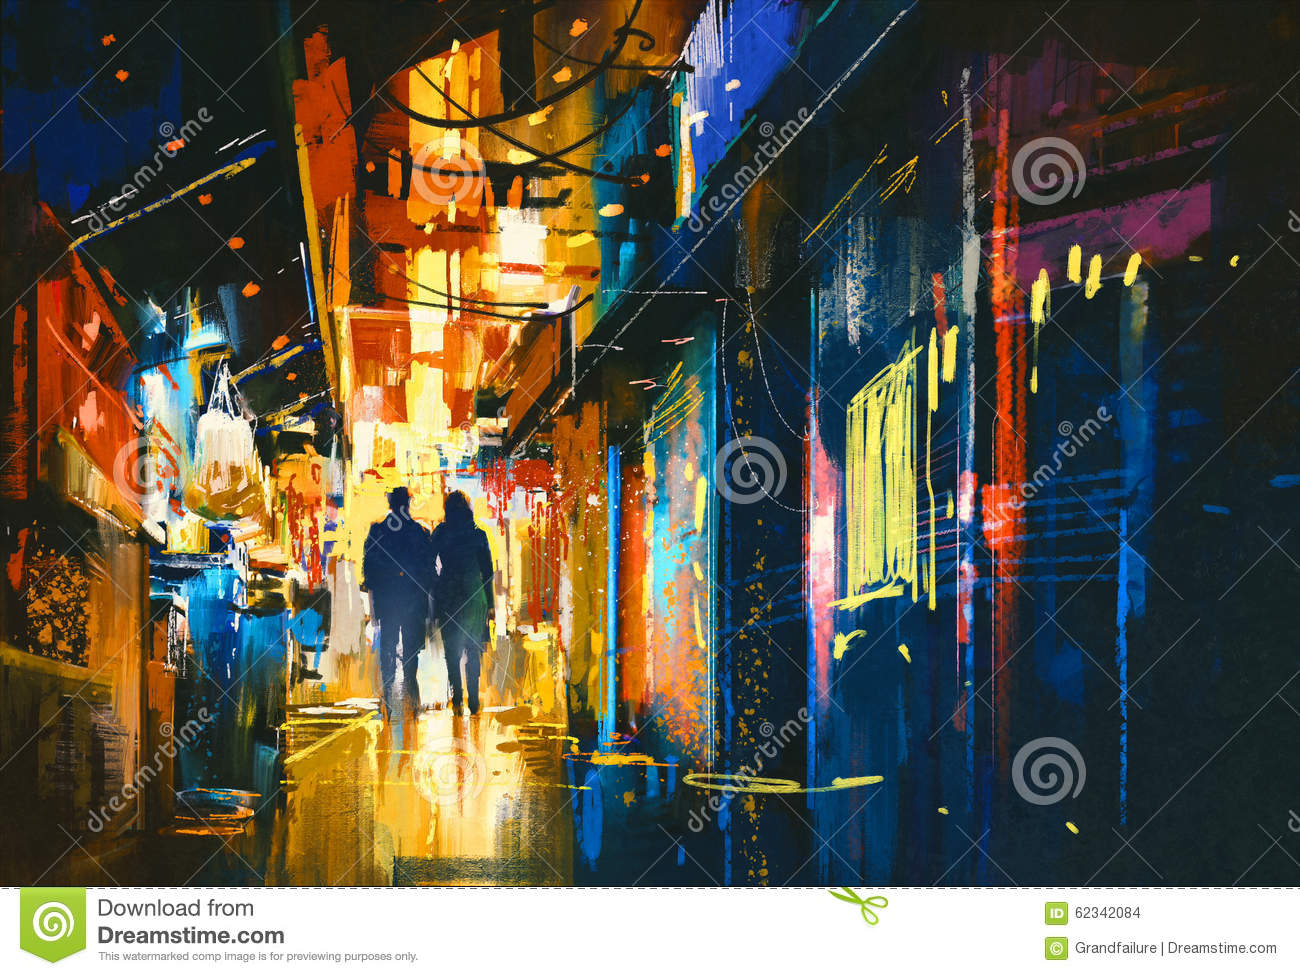 Couple walking in alley with colorful lights